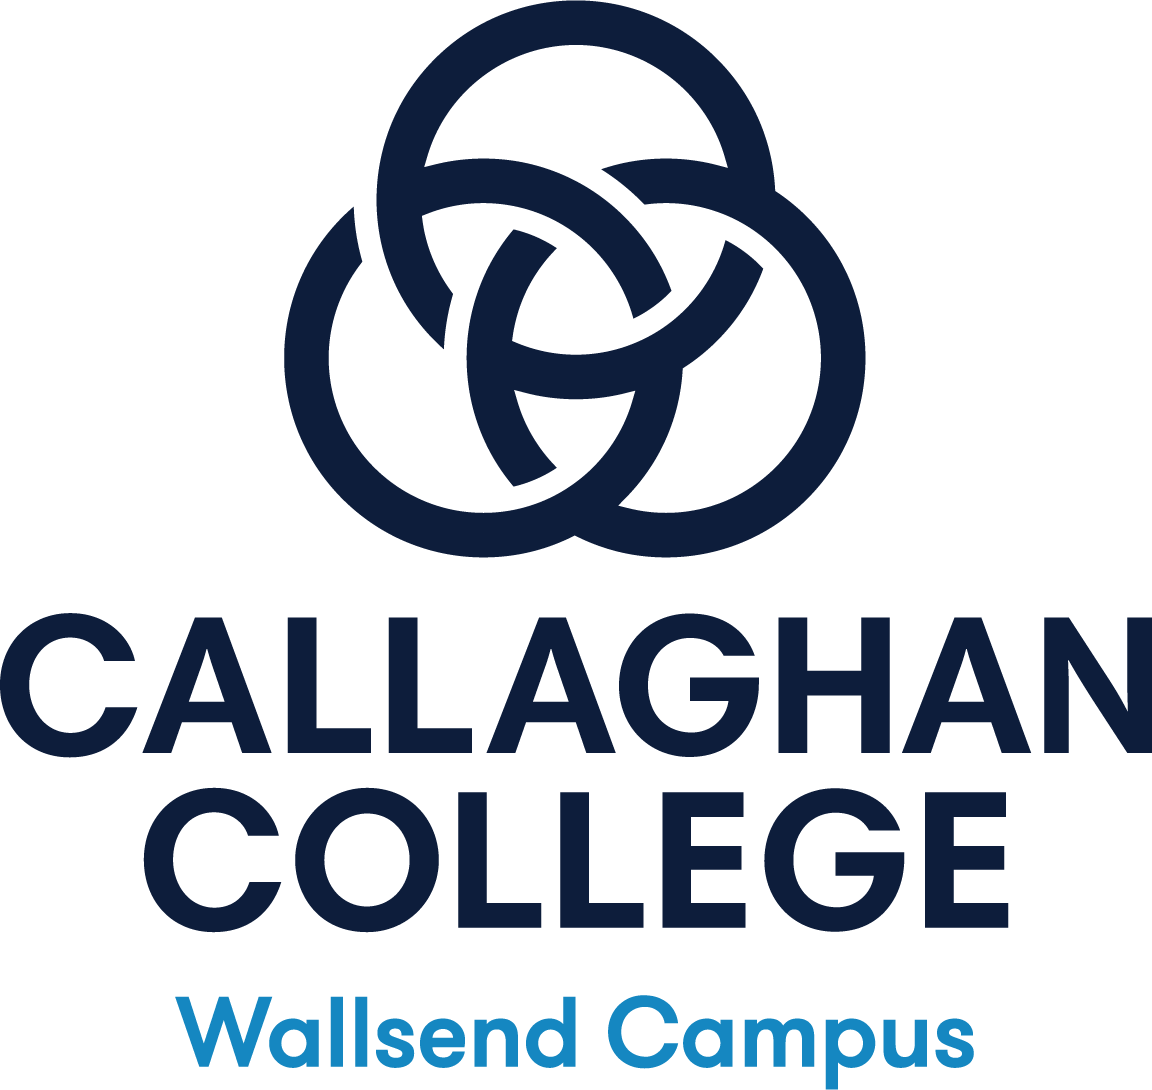 Callaghan College Wallsend Campus logo